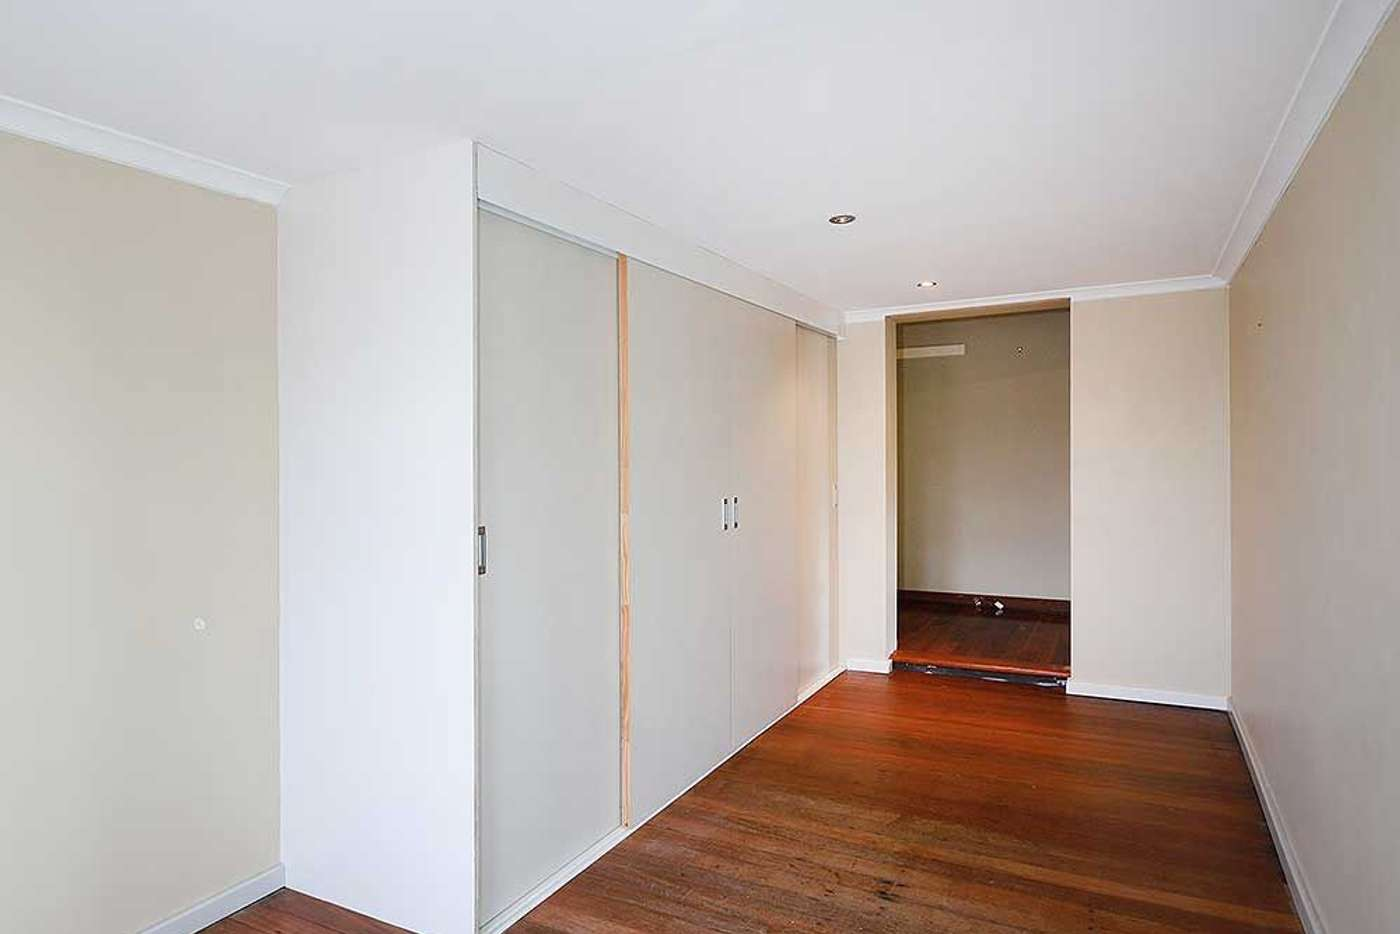 Seventh view of Homely house listing, 24 Schofield Street, Eden Hill WA 6054